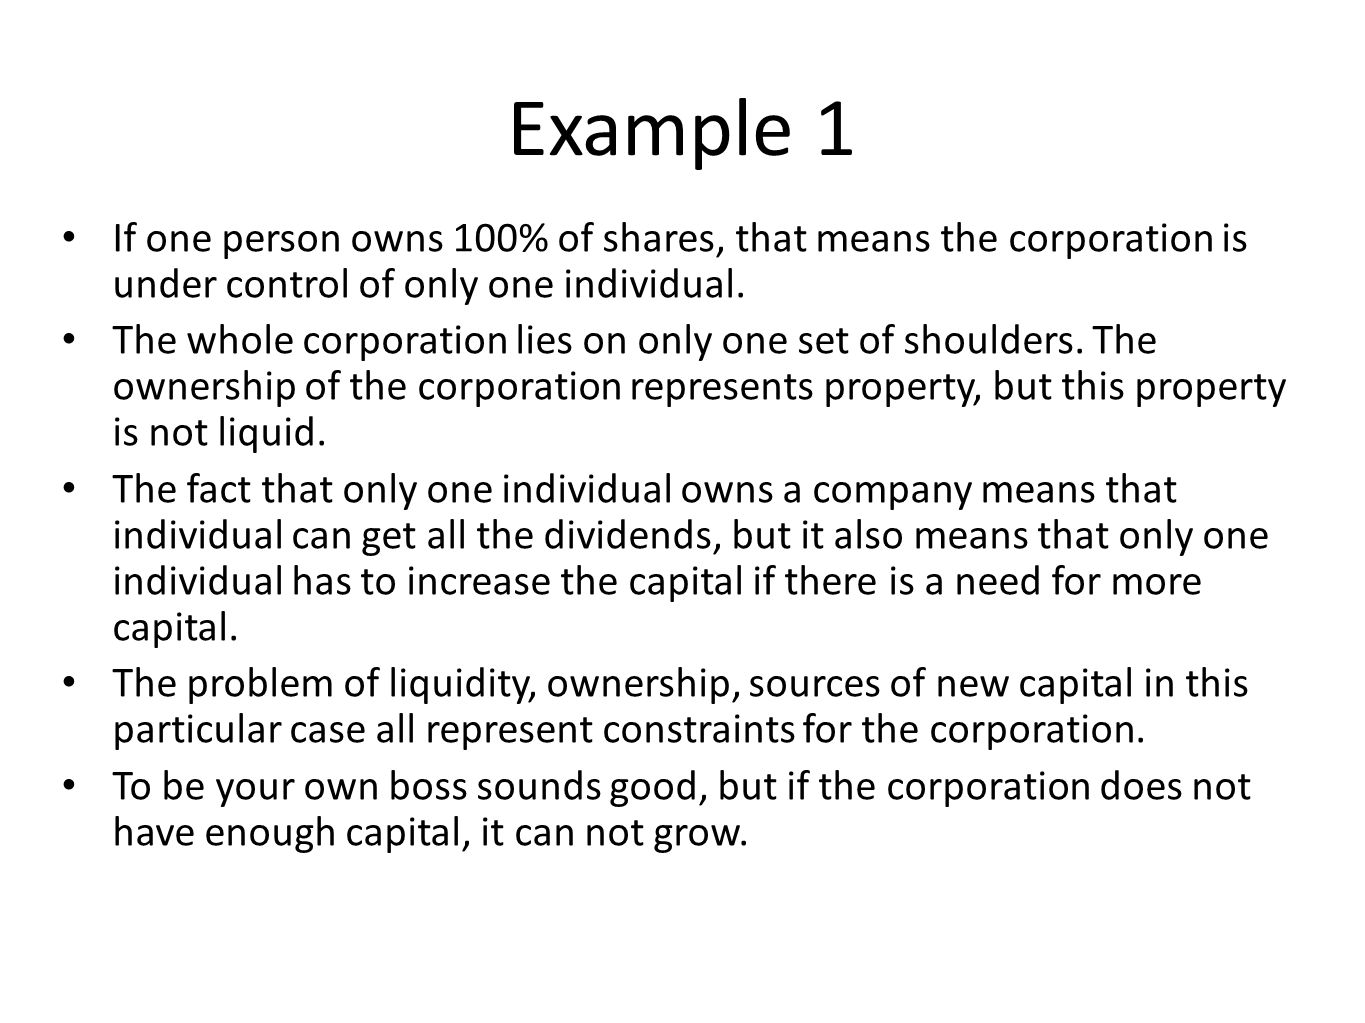 Example 1 If one person owns 100% of shares, that means the corporation is under control of only one individual.